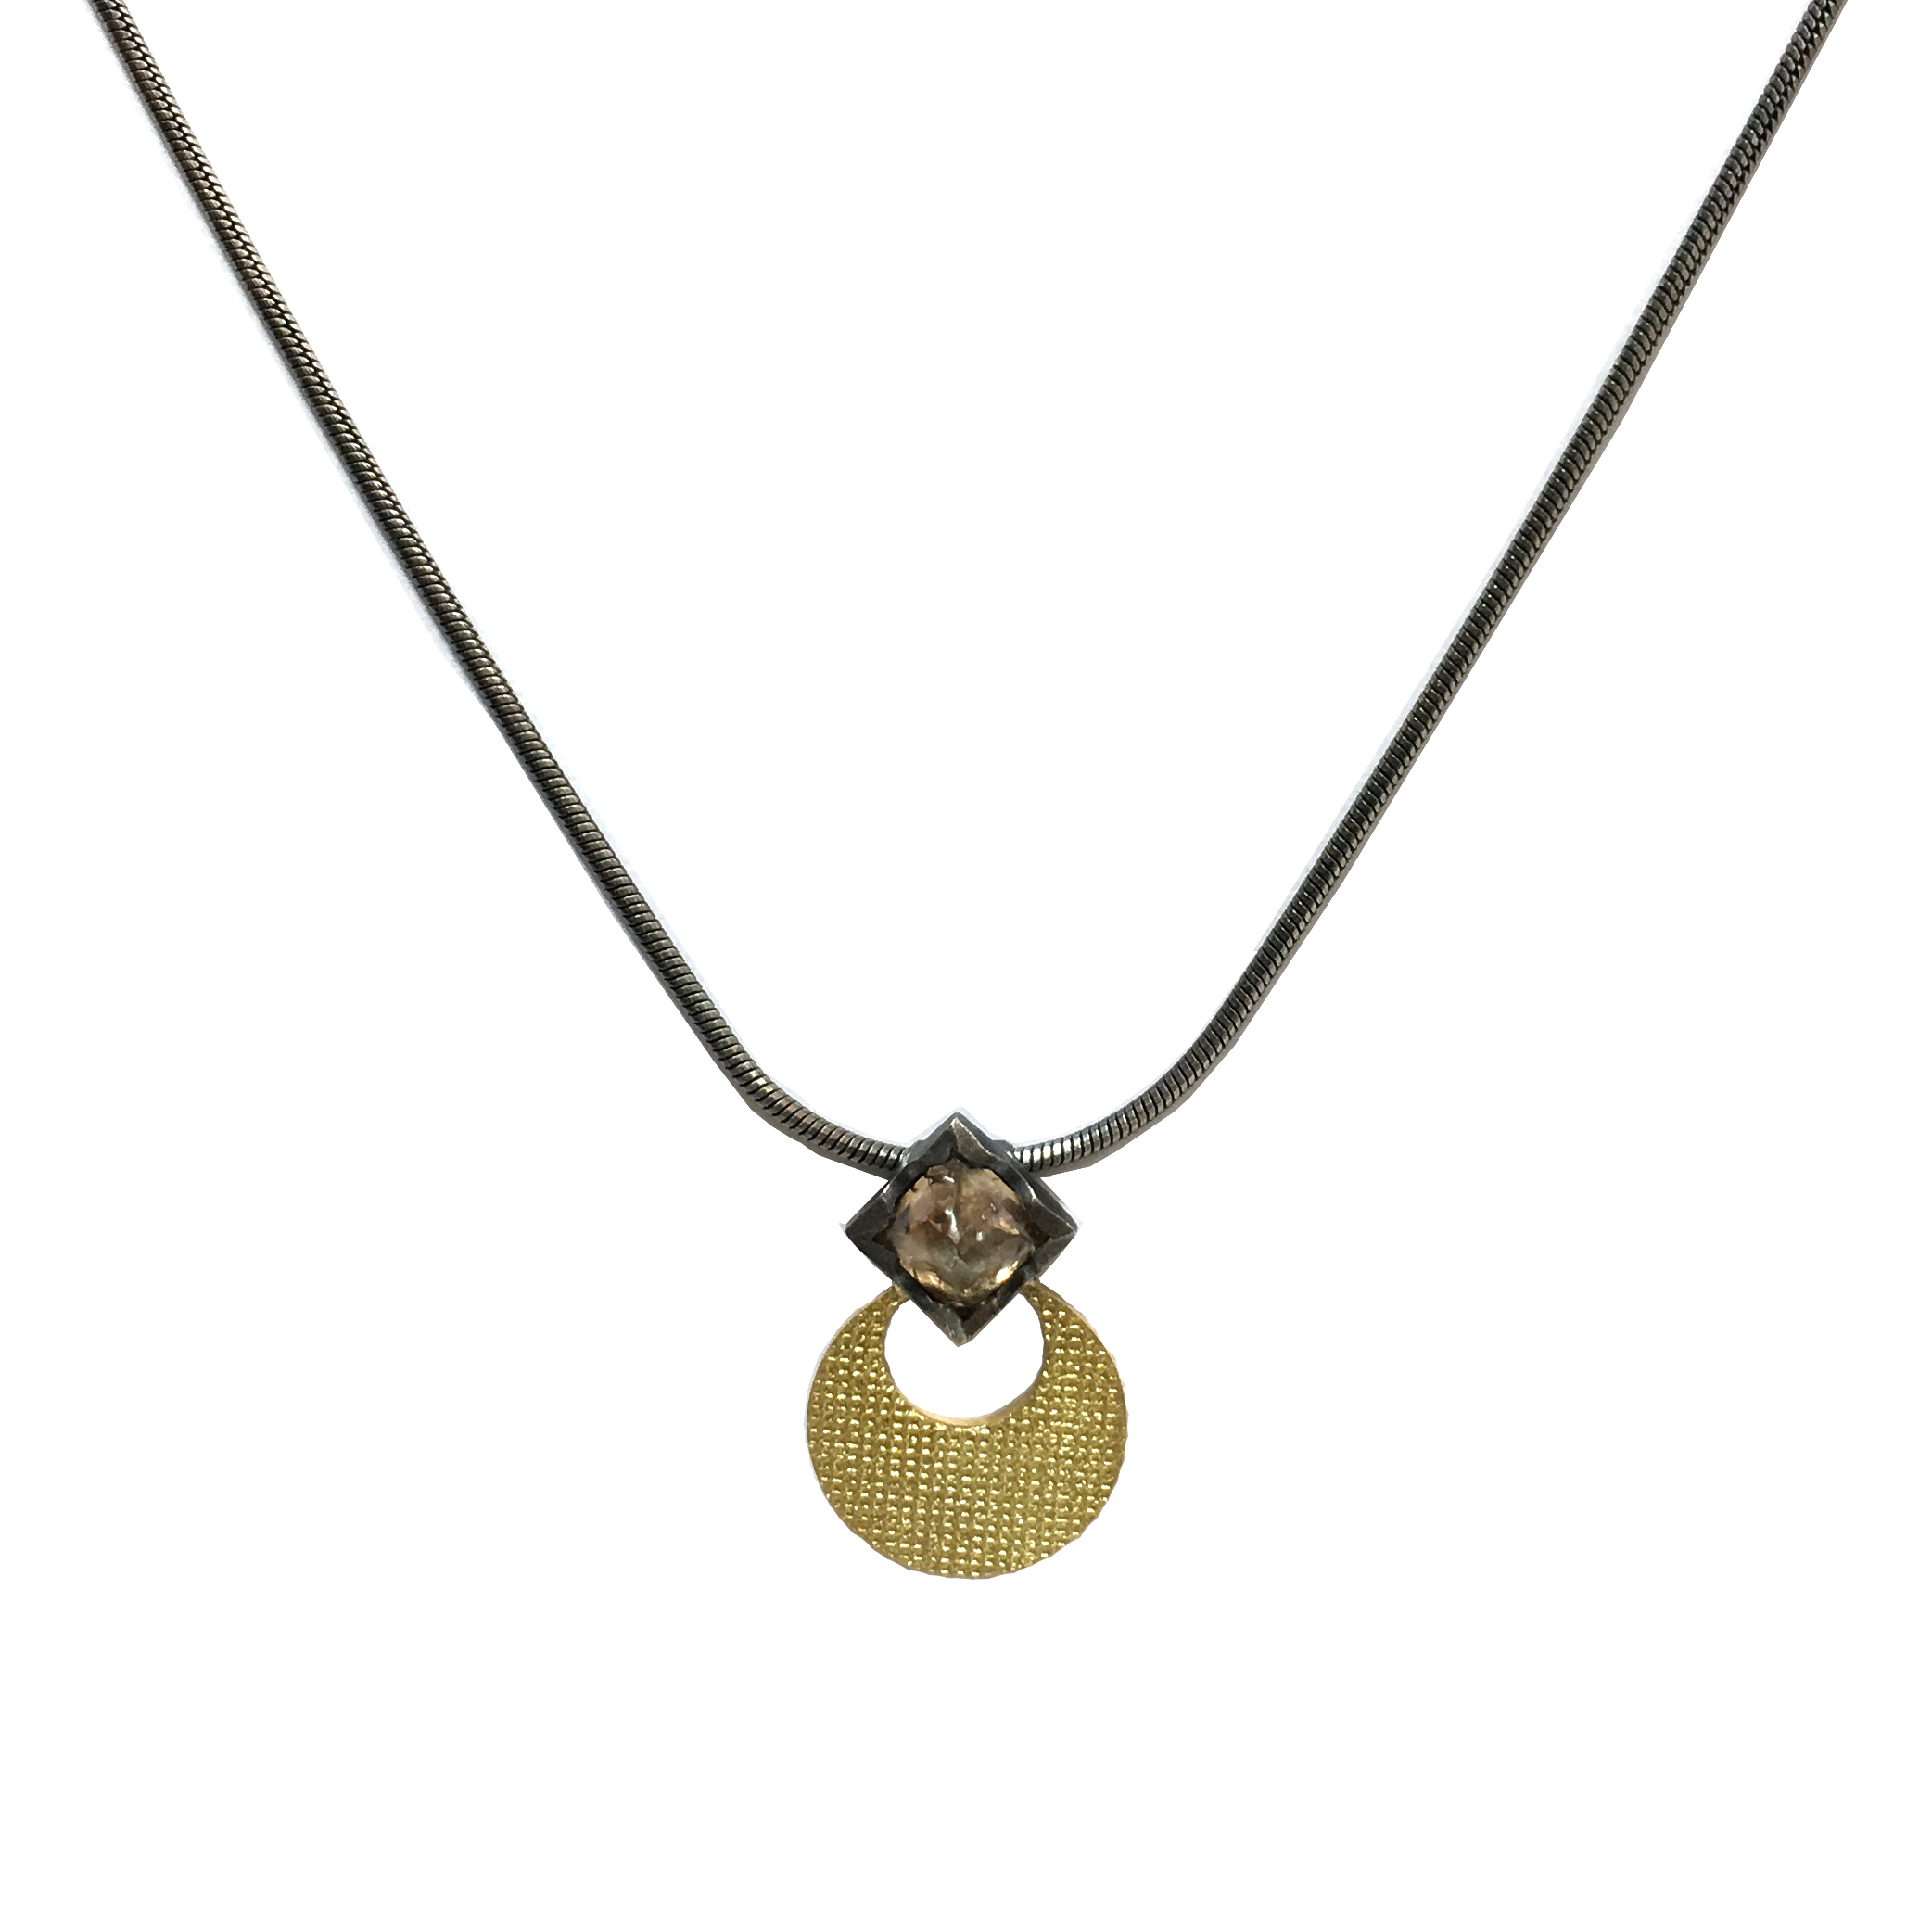 Melanie Ihnen argyle diamond and 18ct gold necklace large for promo card.jpg